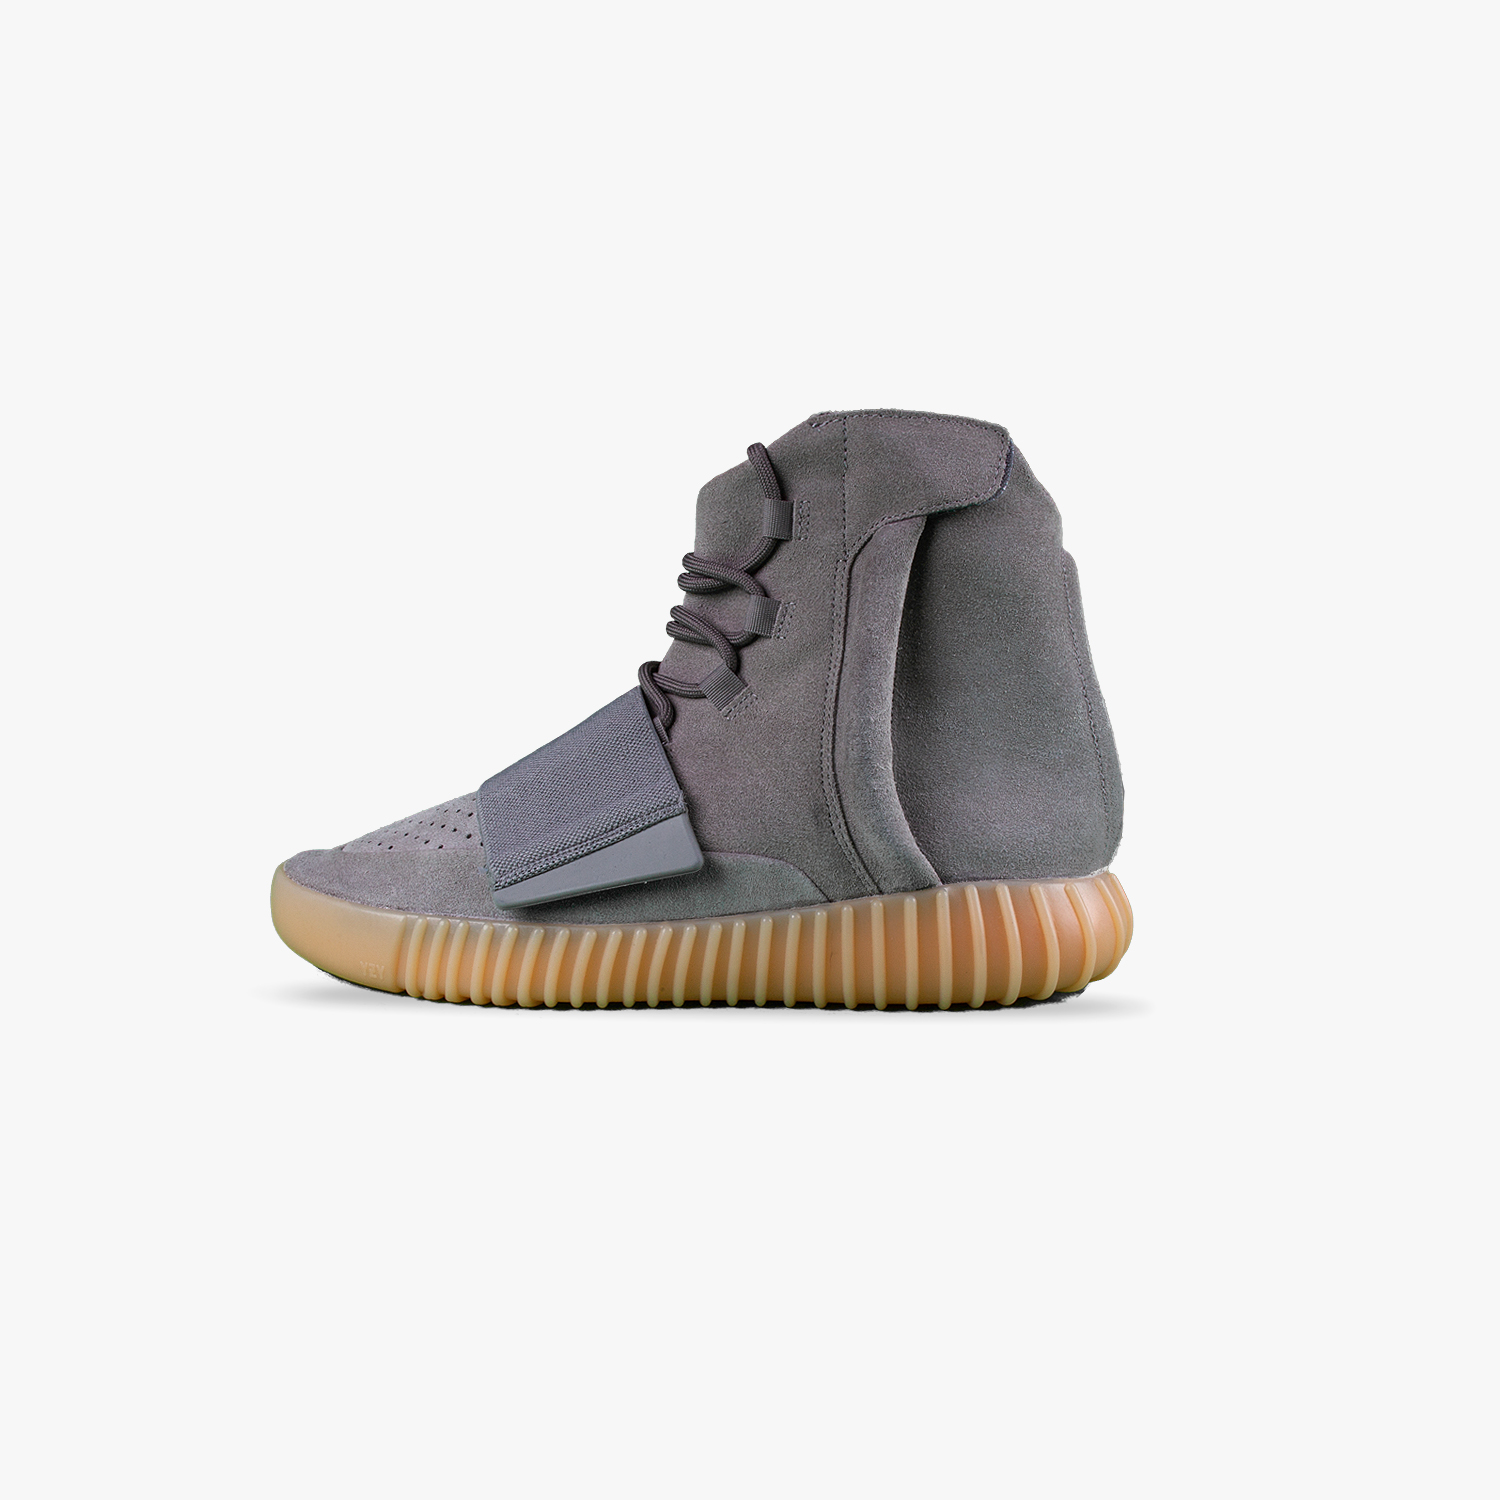 cheap for discount 3c072 12073 Adidas Yeezy Boost 750 Greygum